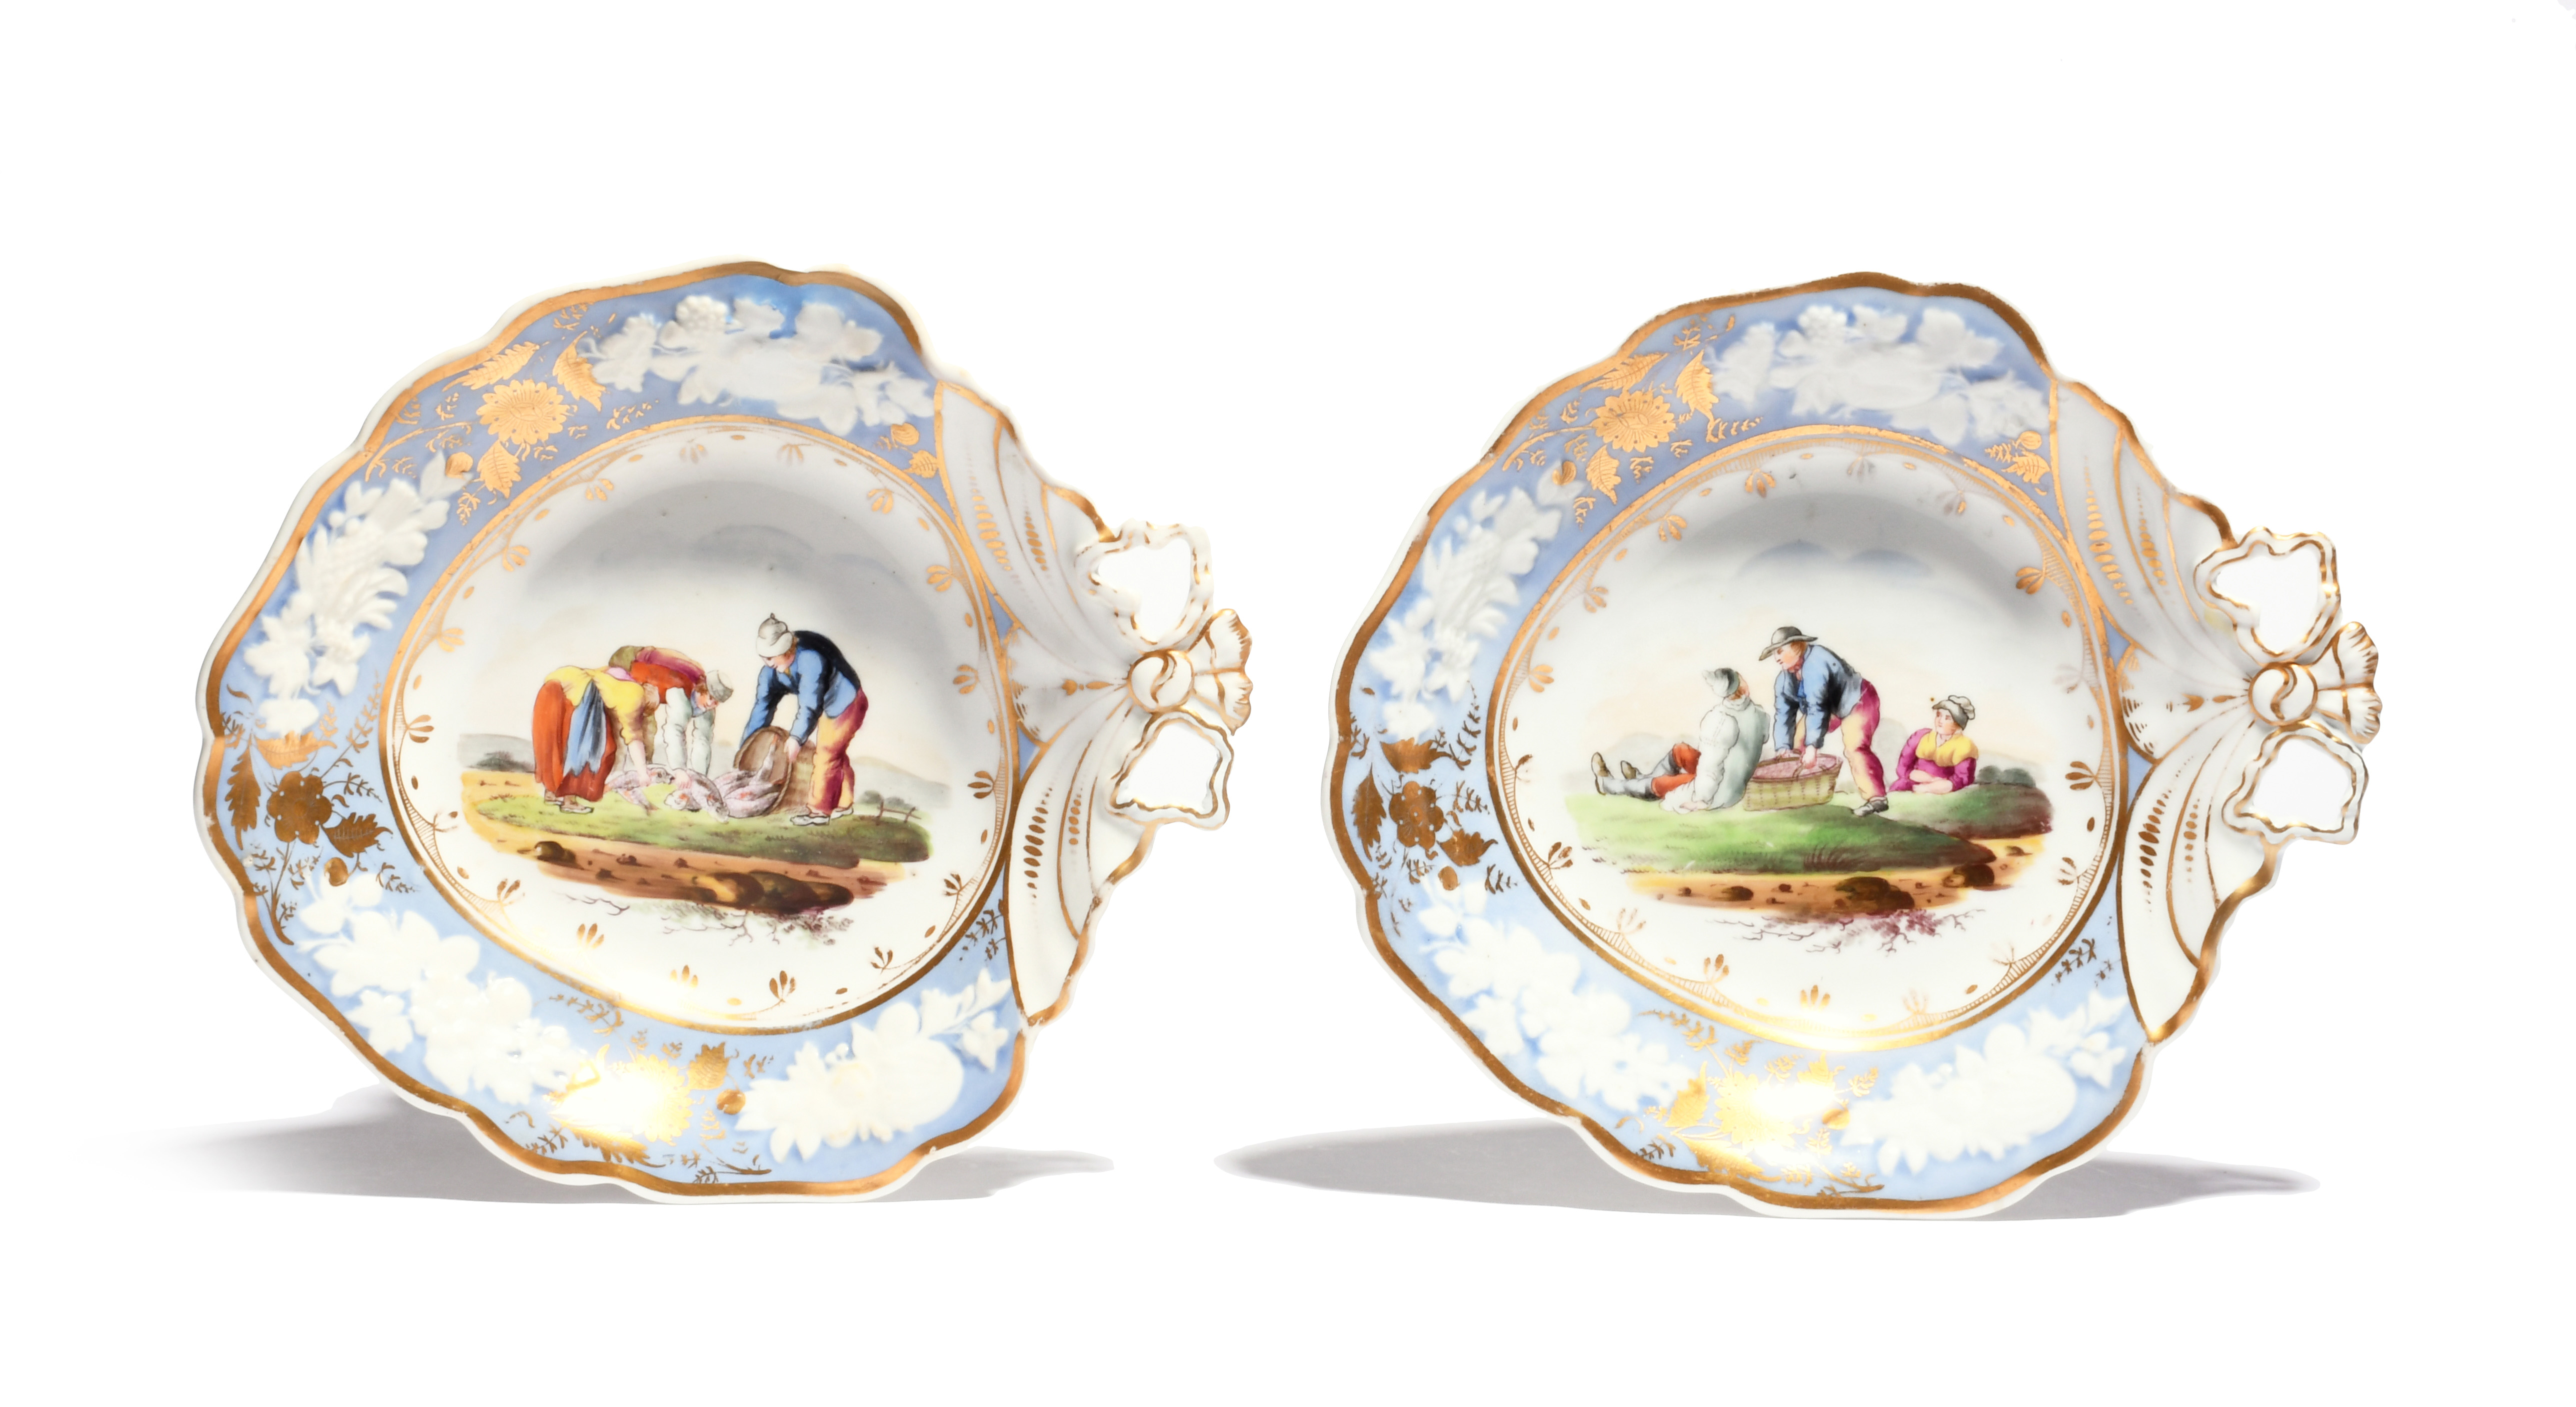 A pair of New Hall dessert dishes c.1810-20, decorated in pattern 2229 with peasant figures